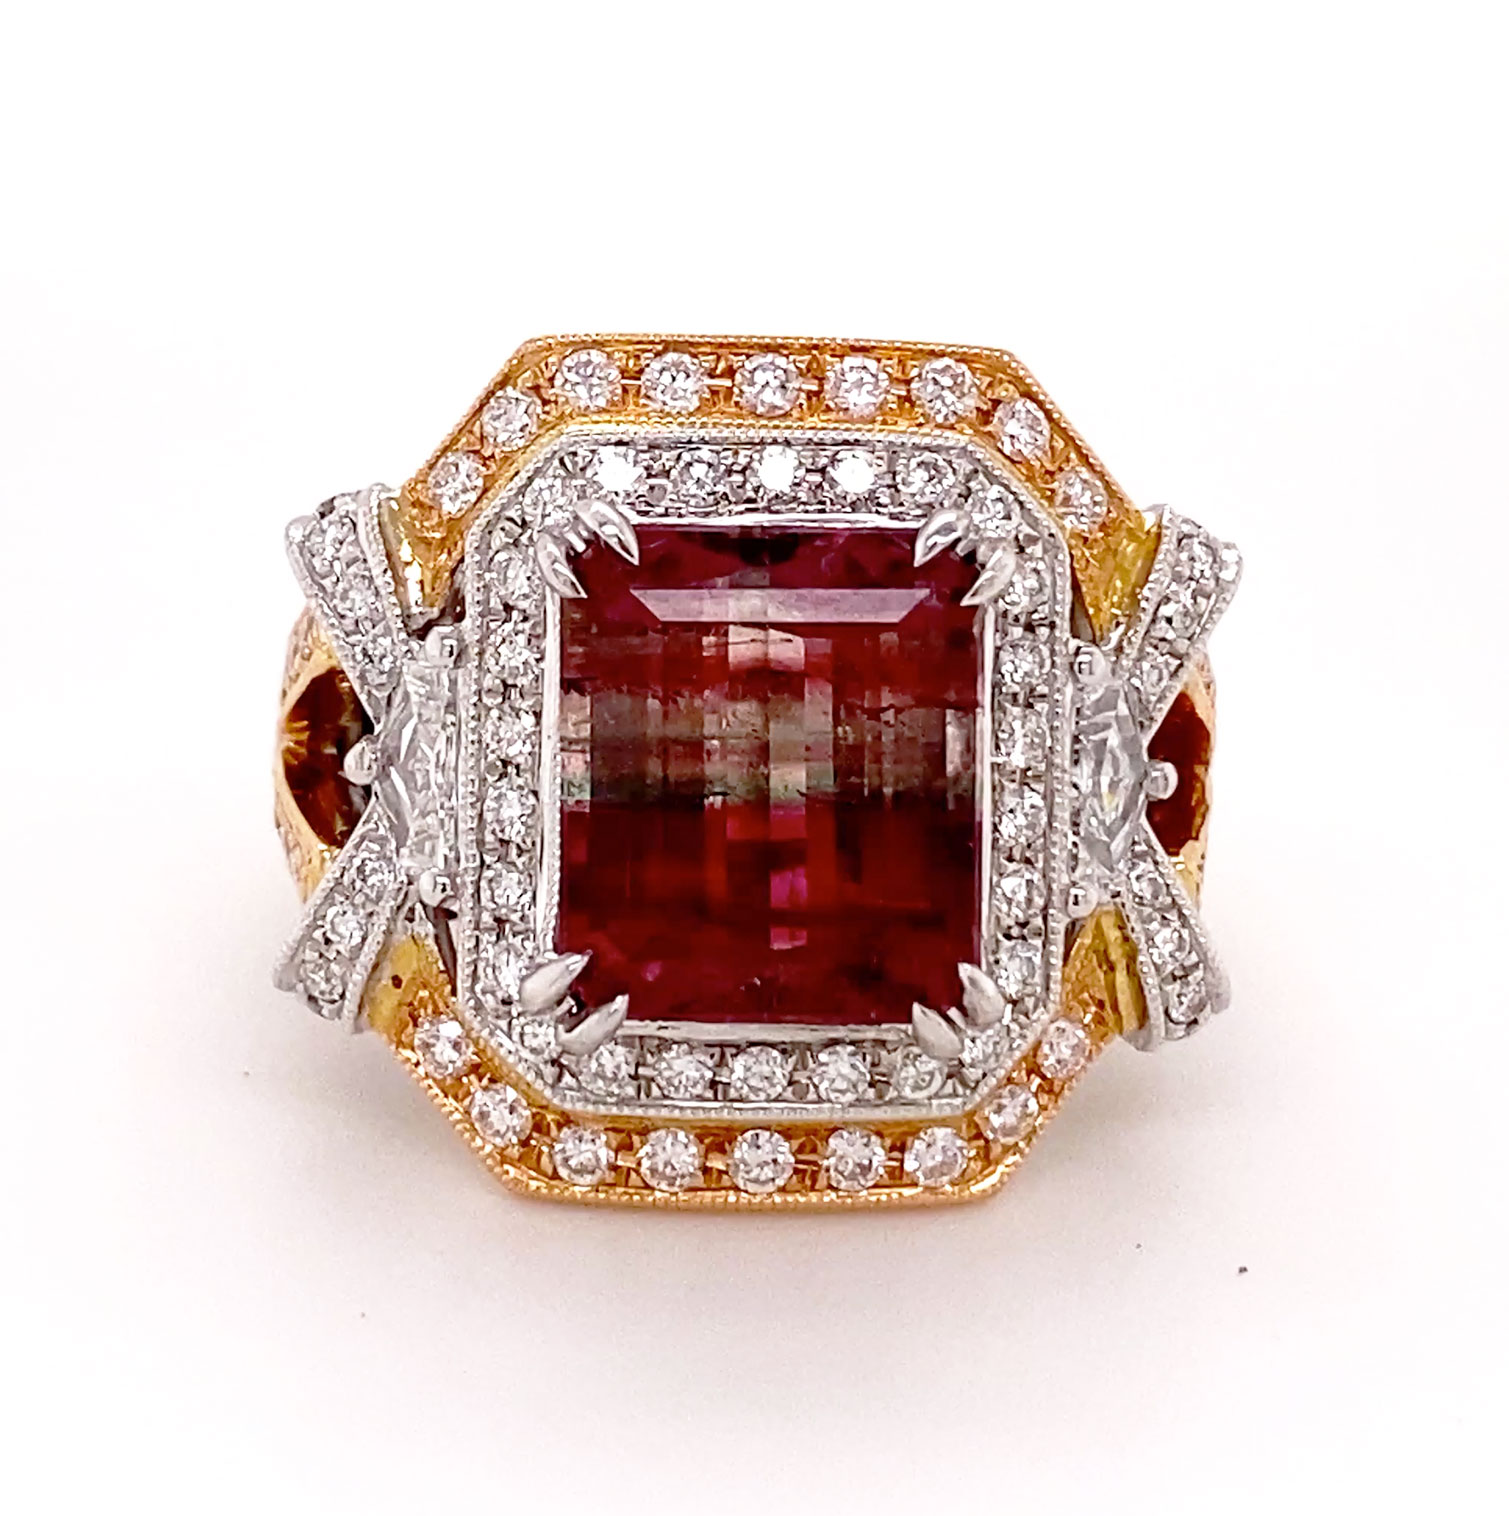 Amazing tricolor gold ring frames a rare multicolor Tourmaline accented with pave-set Diamonds... a showstopper!